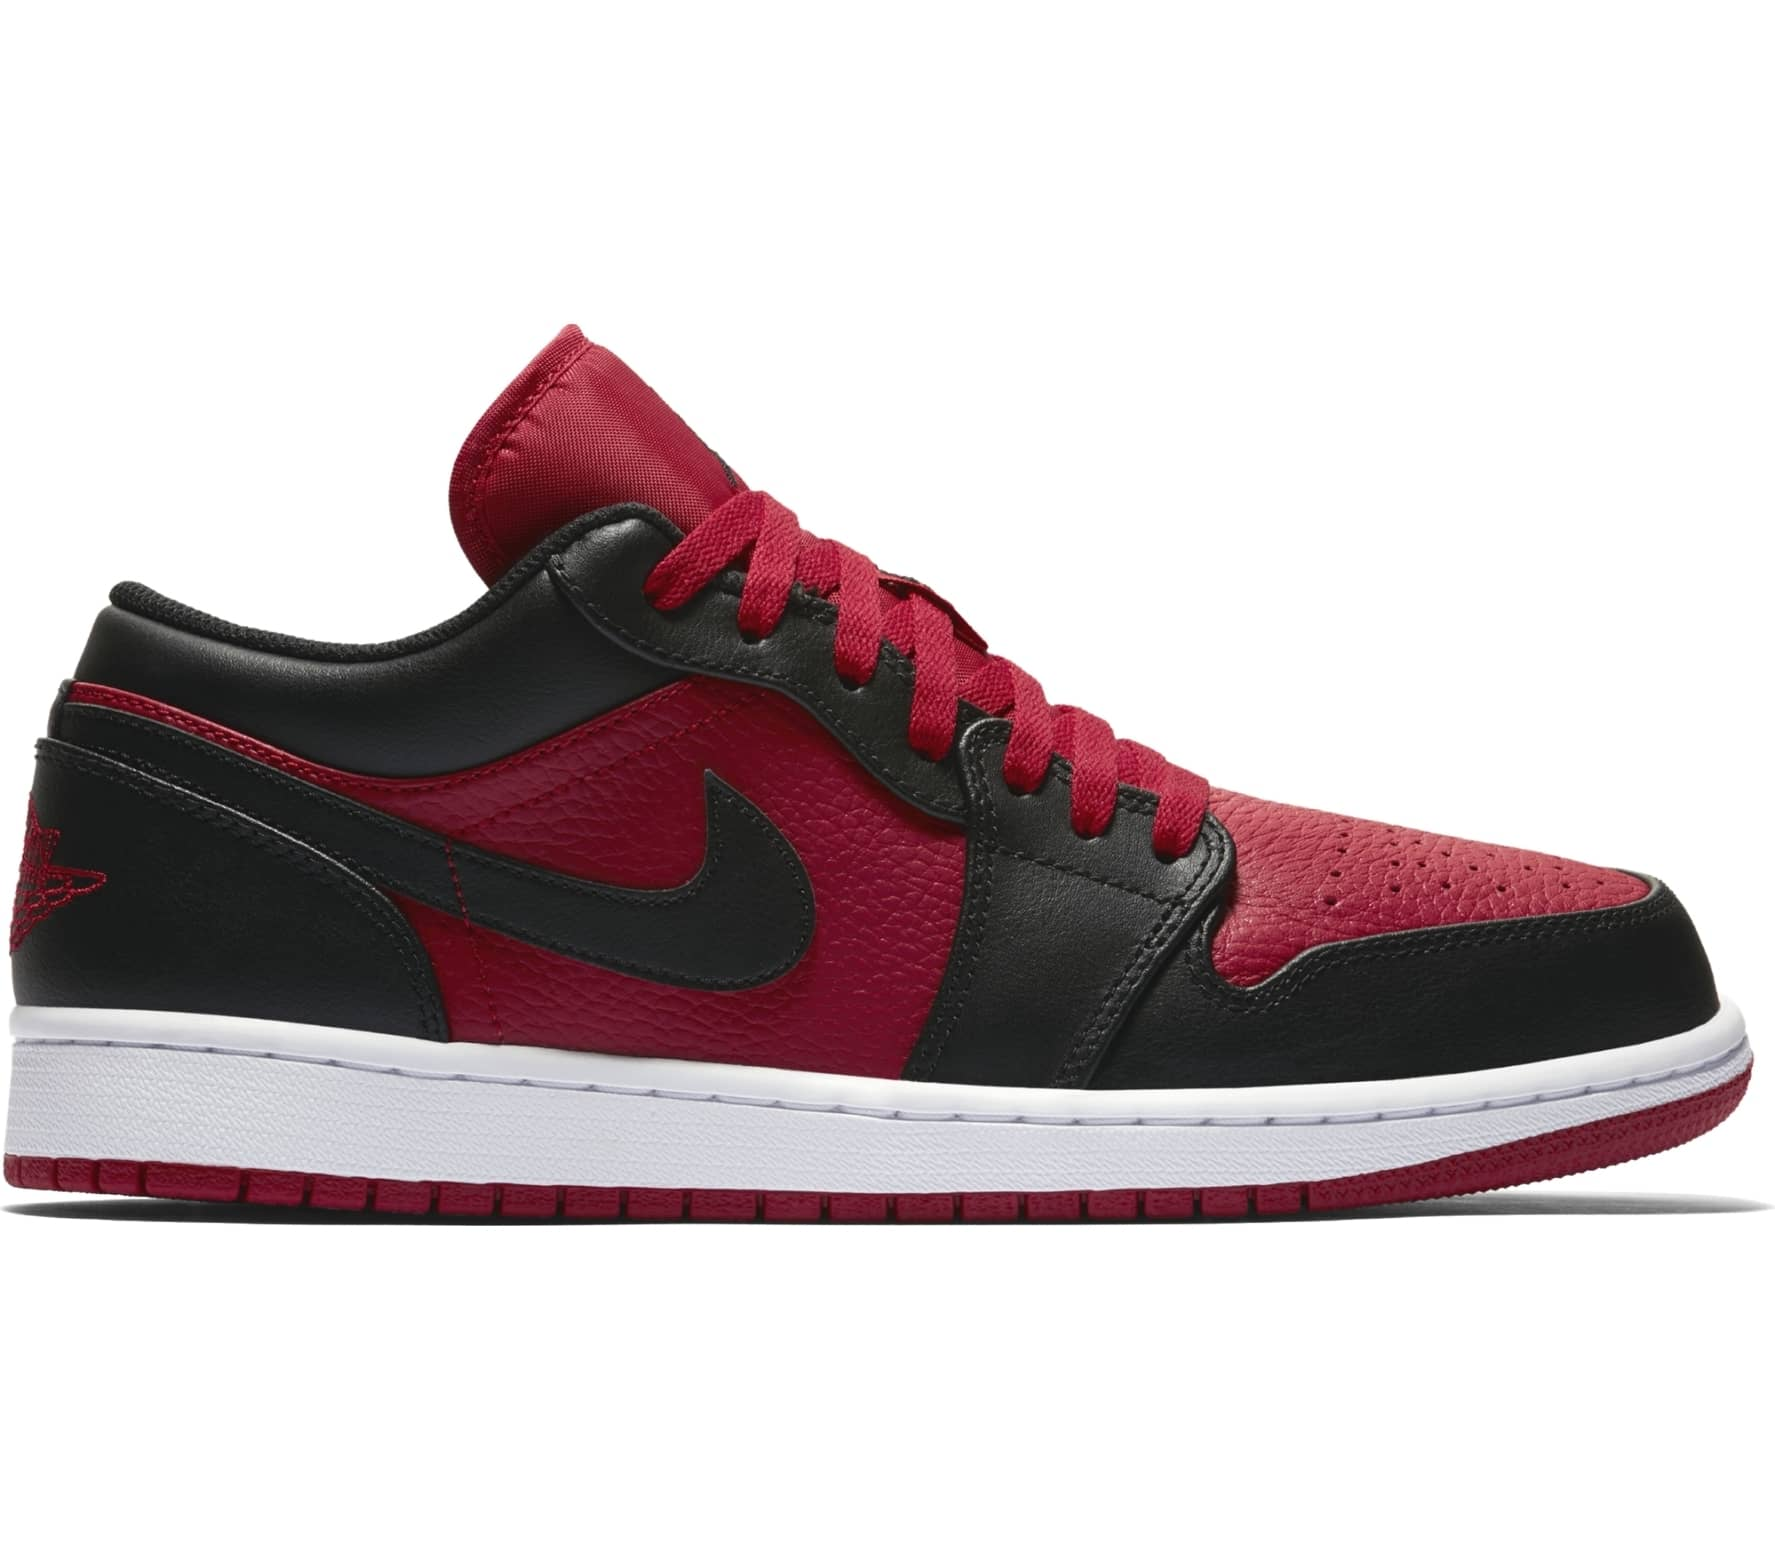 buy popular 046a1 48a39 Jordan - Air Jordan 1 LOW men s trainers (red black)